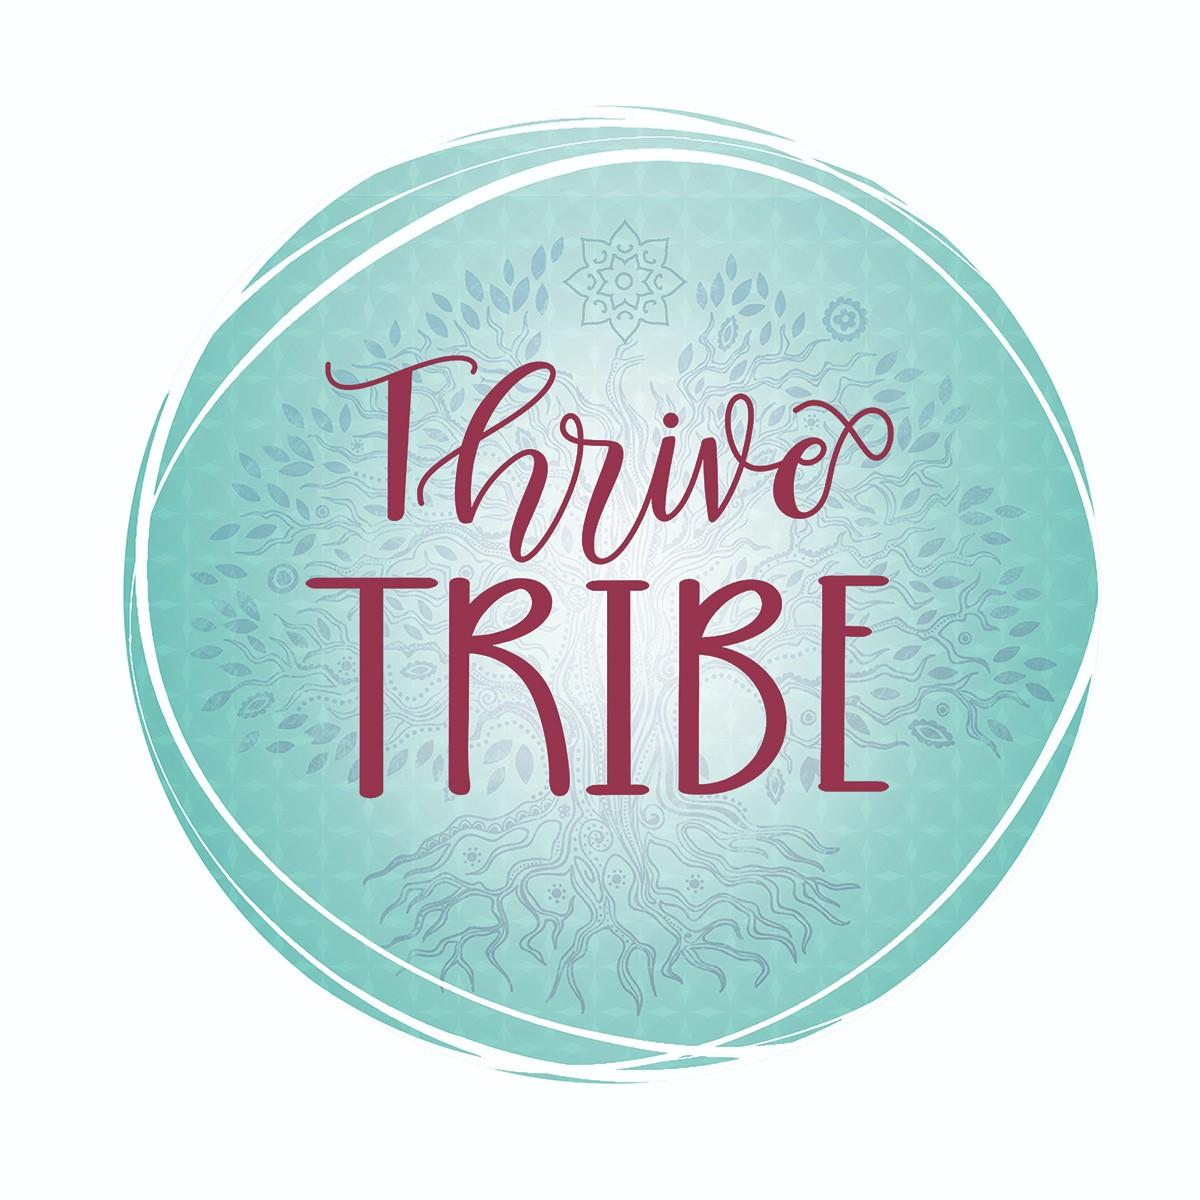 Thrive Tribe - Kc Rossi Group Coaching